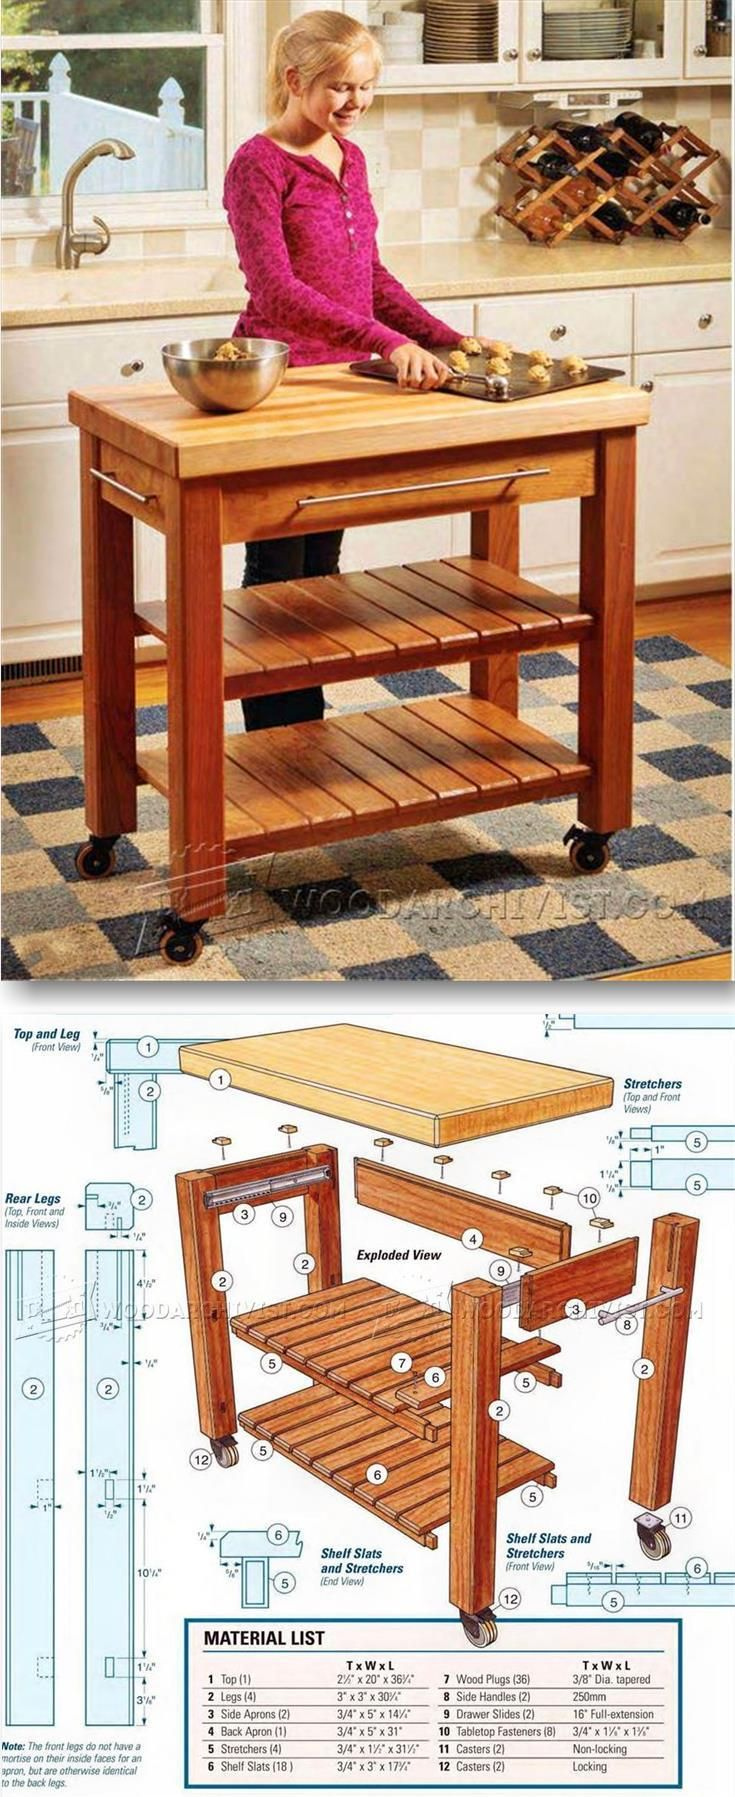 Portable Kitchen Island Plans - Furniture Plans and Projects | WoodArchivist.com